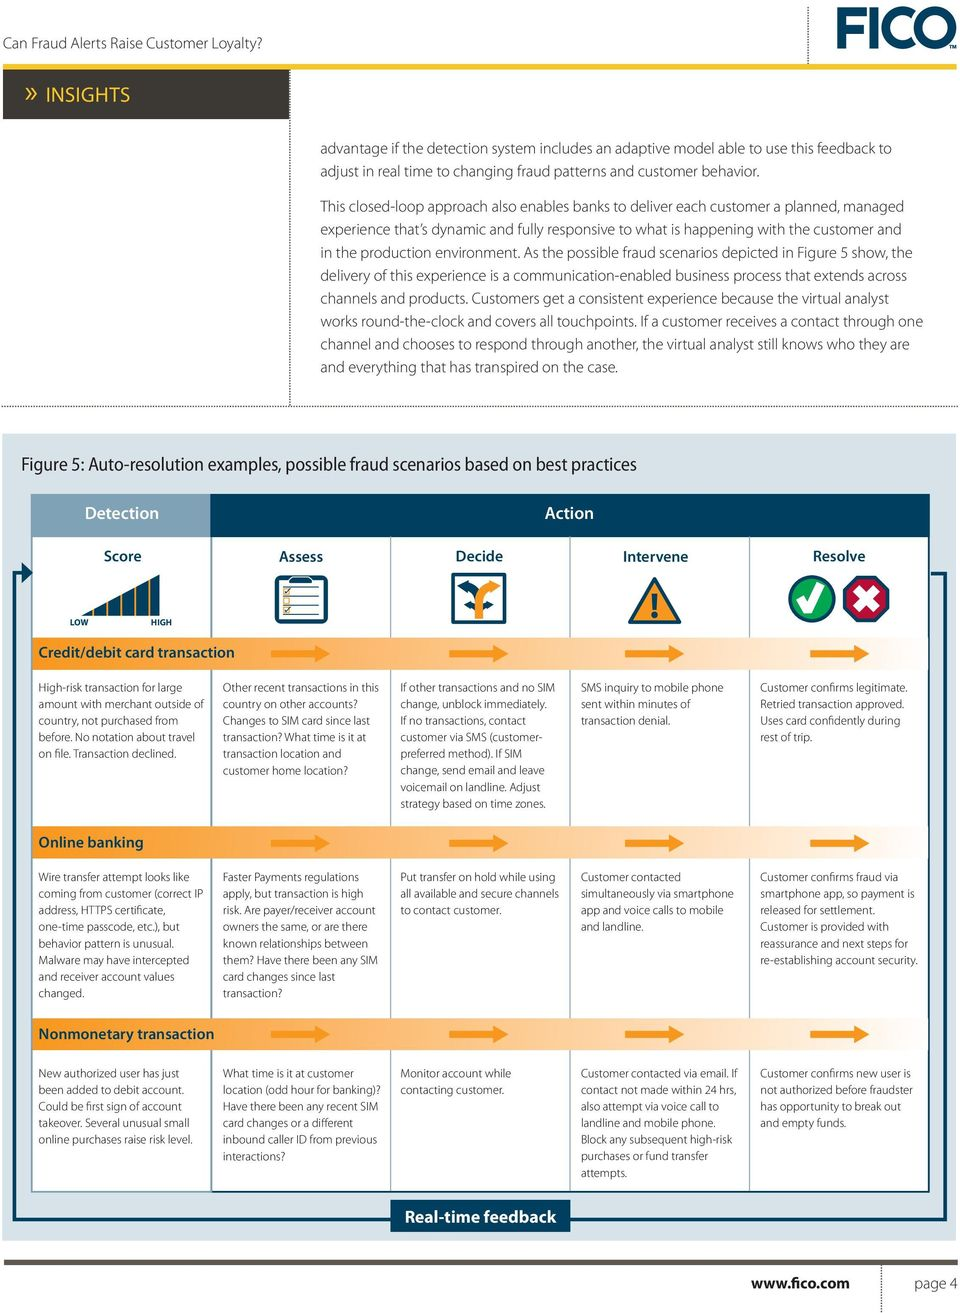 environment. As the possible fraud scenarios depicted in Figure 5 show, the delivery of this experience is a communication-enabled business process that extends across channels and products.